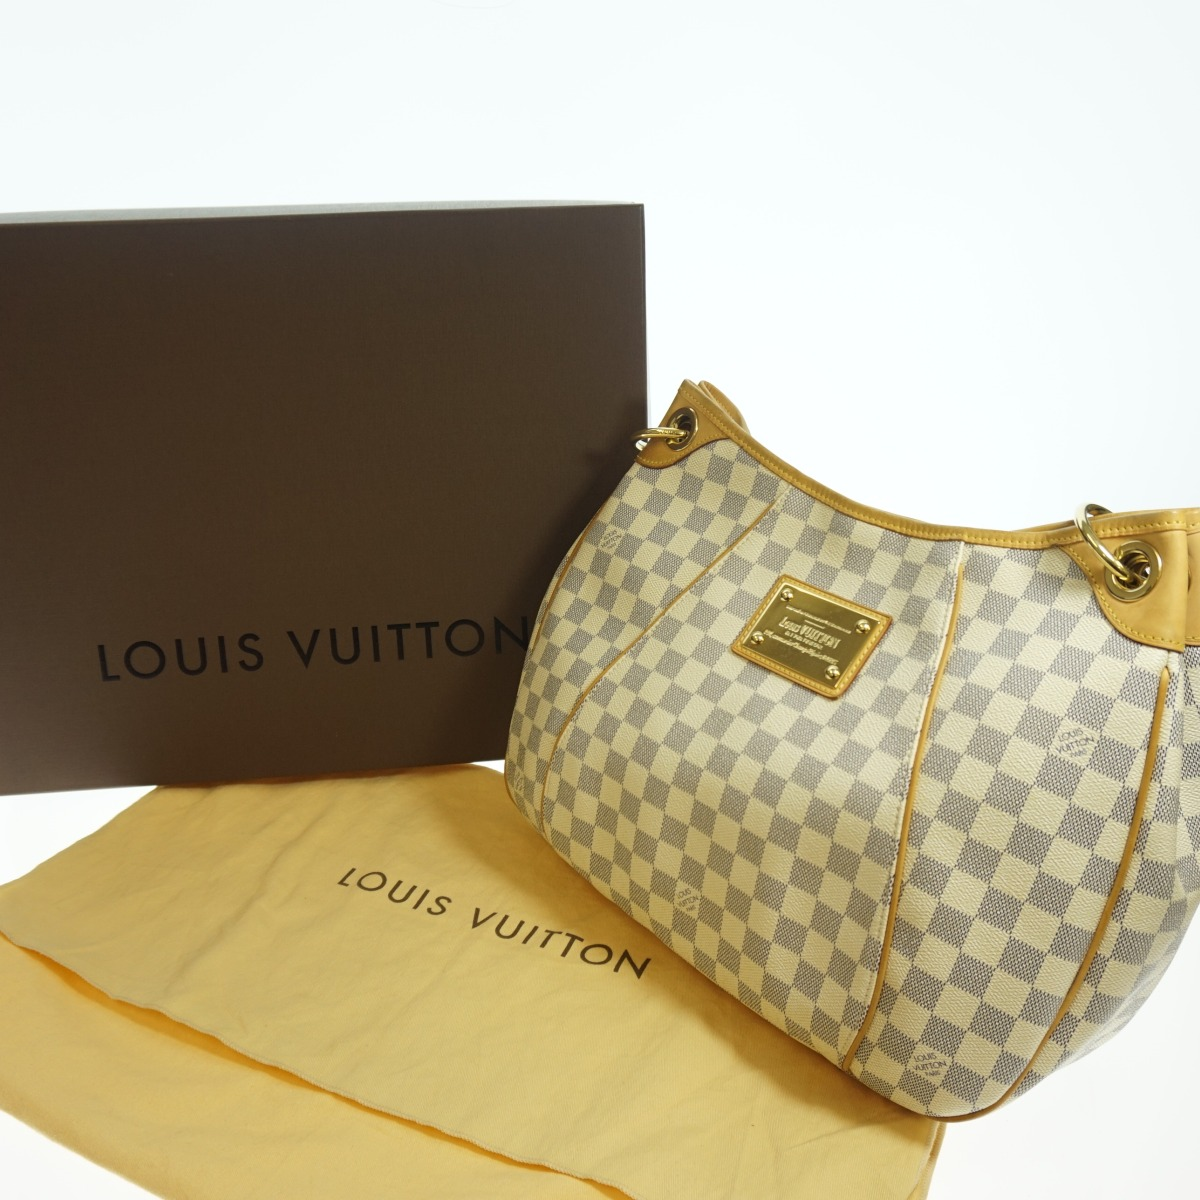 8273bf4bcd7aa Authentic Louis Vuitton Damier Azur Monogram Galliera Pm - My Frugal ...